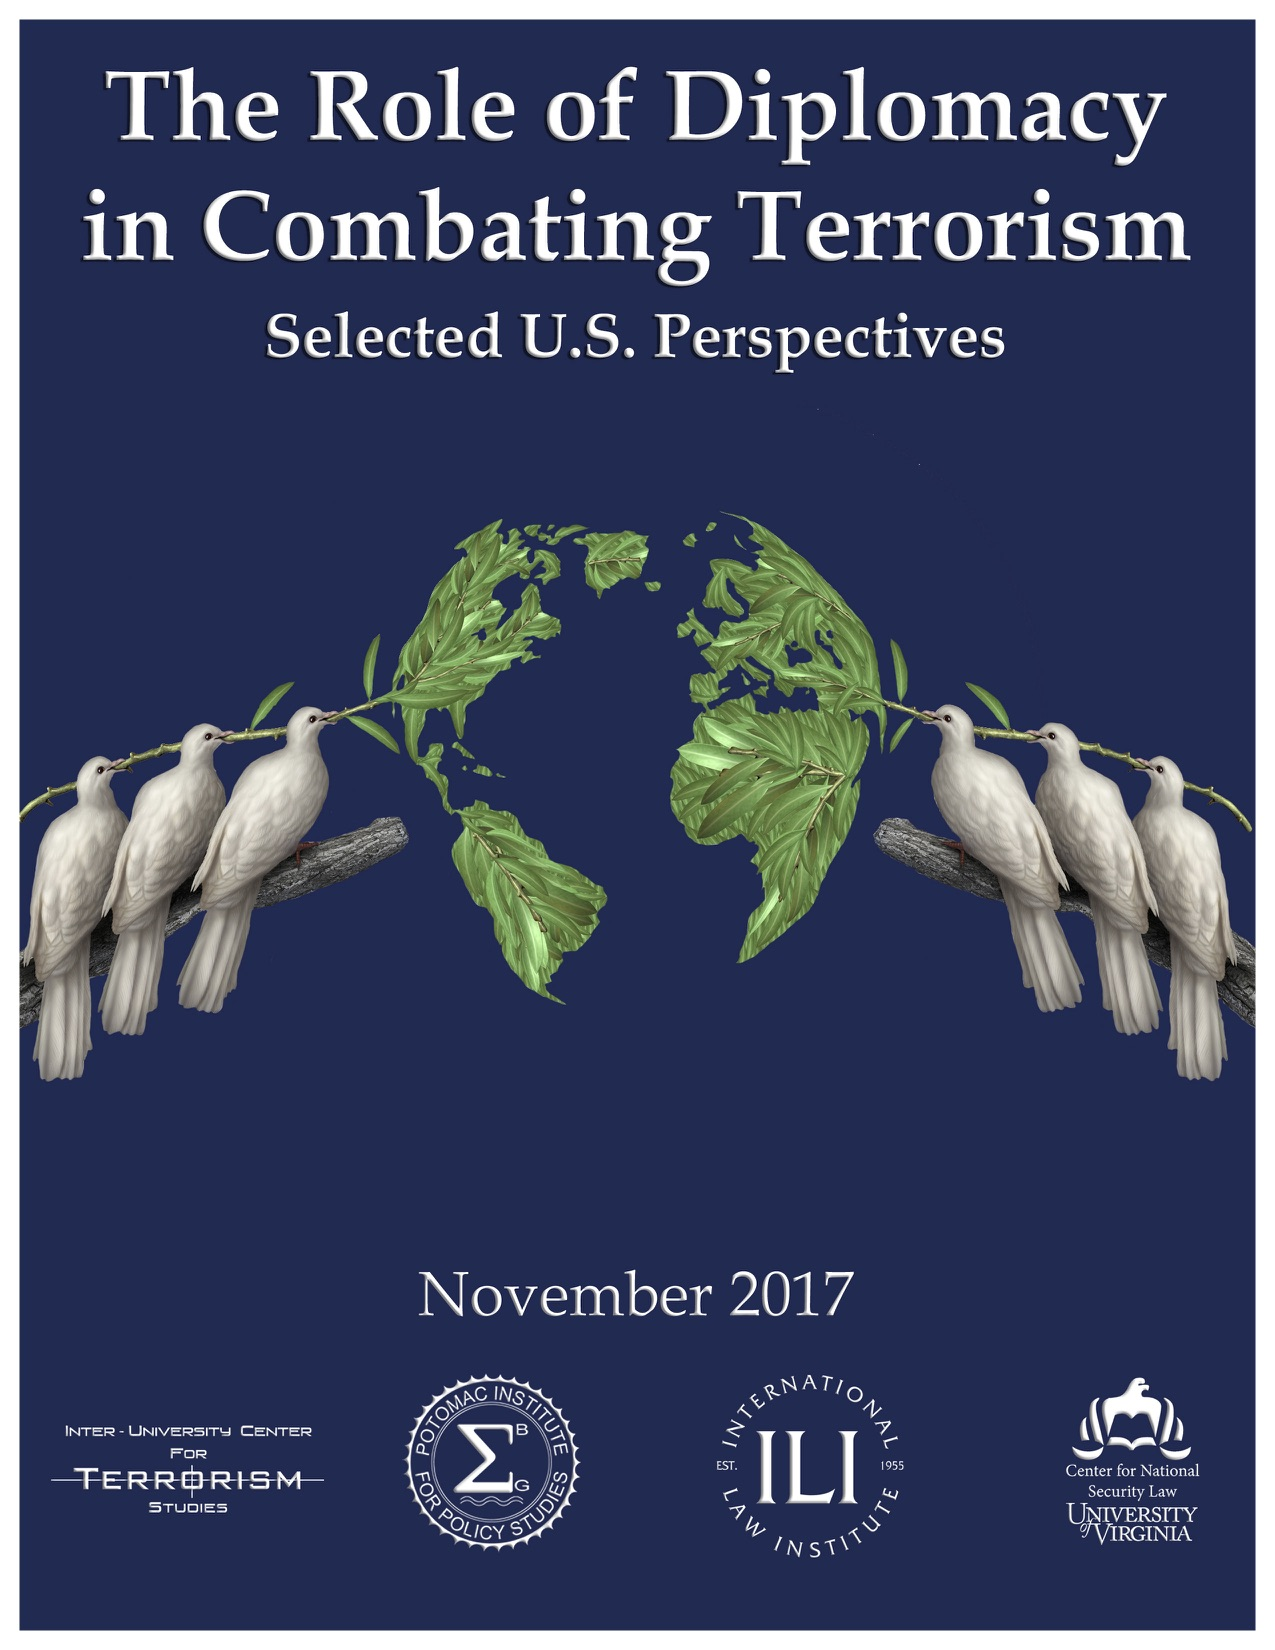 The Role of Diplomacy in Combating Terrorism: Selected U.S. Perspectives